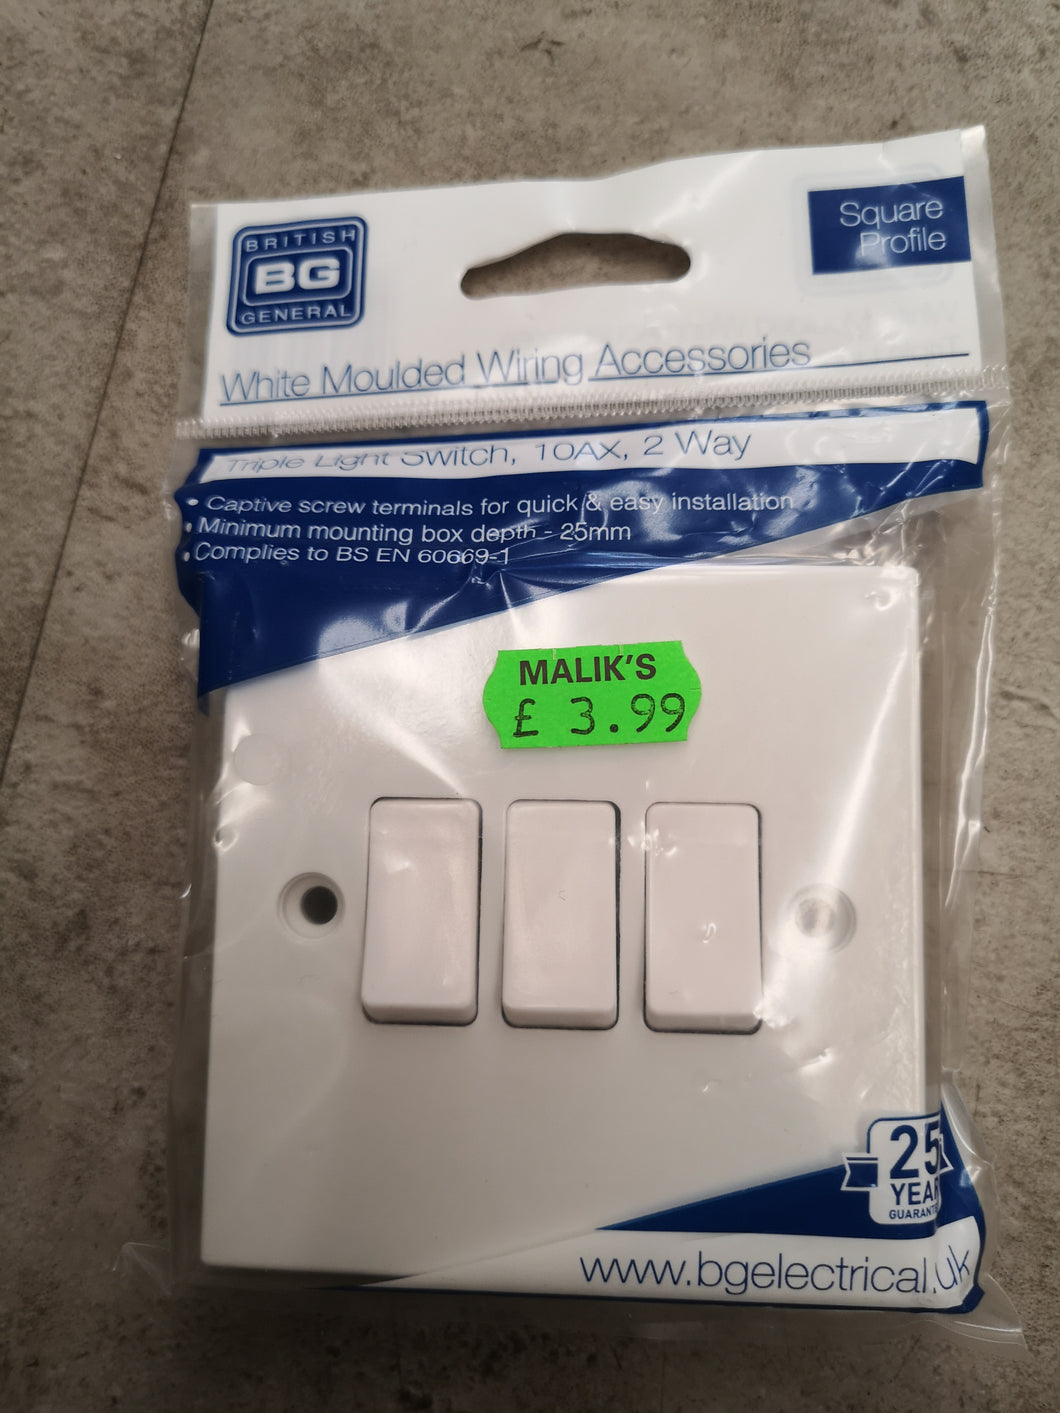 Triple Light Switch 10AX, 2 Way